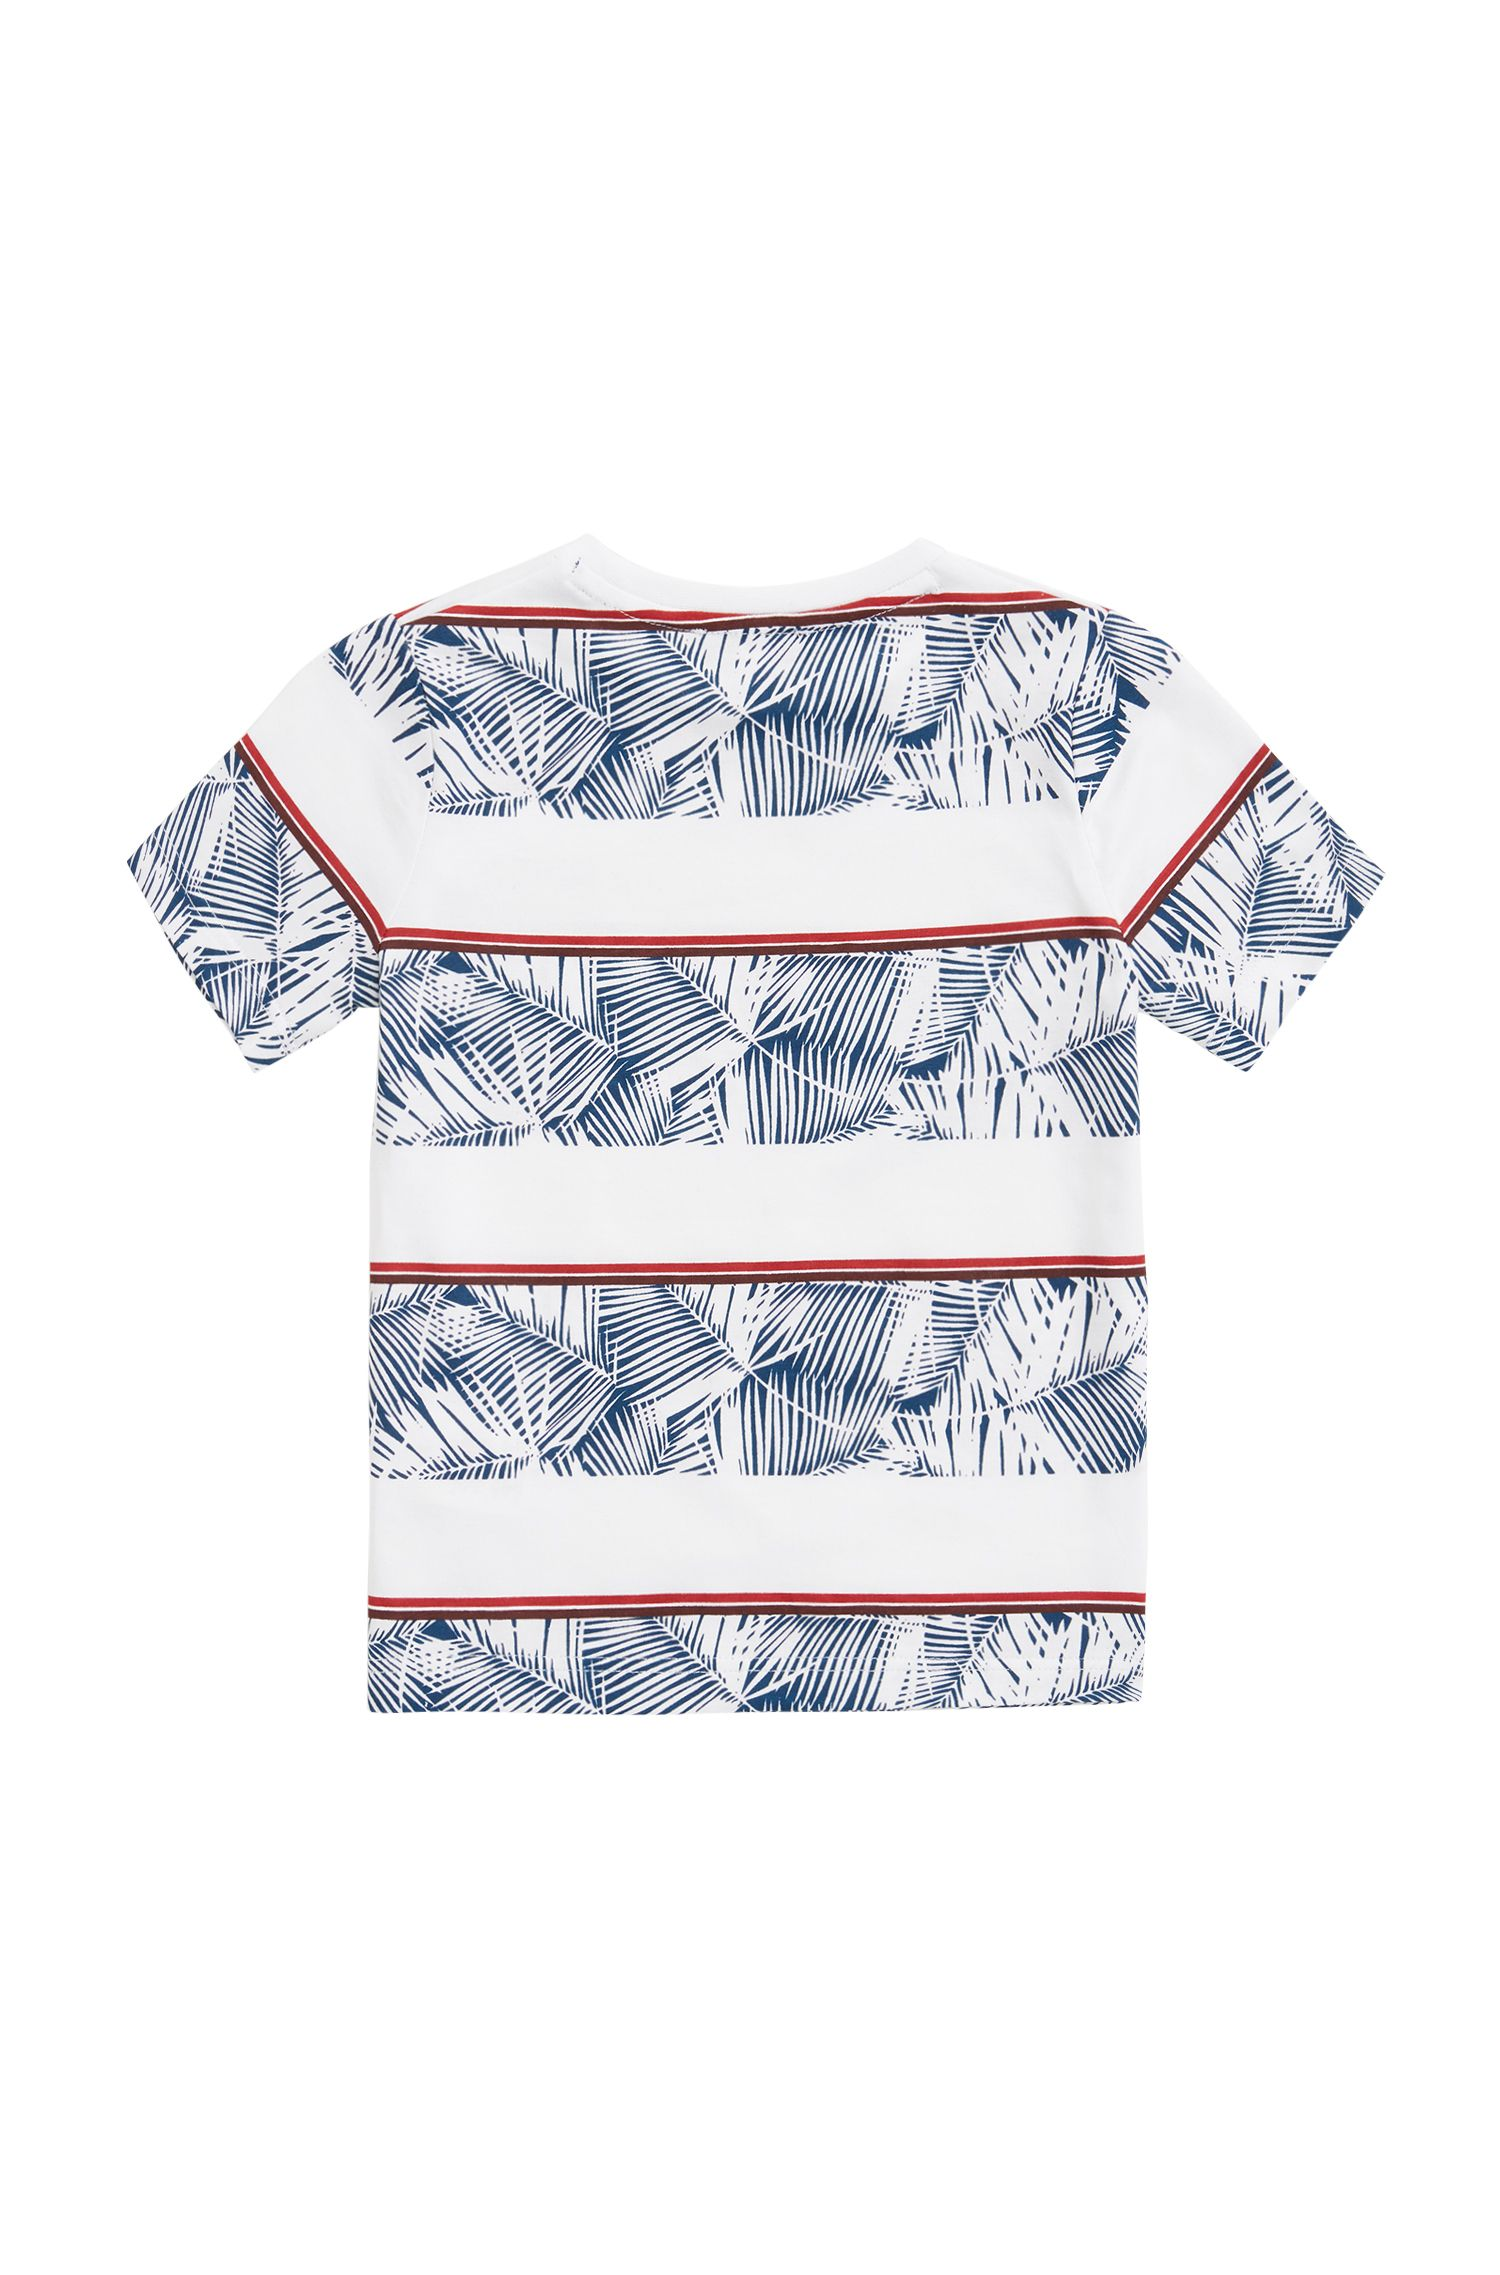 Kids' striped T-shirt in single-jersey cotton